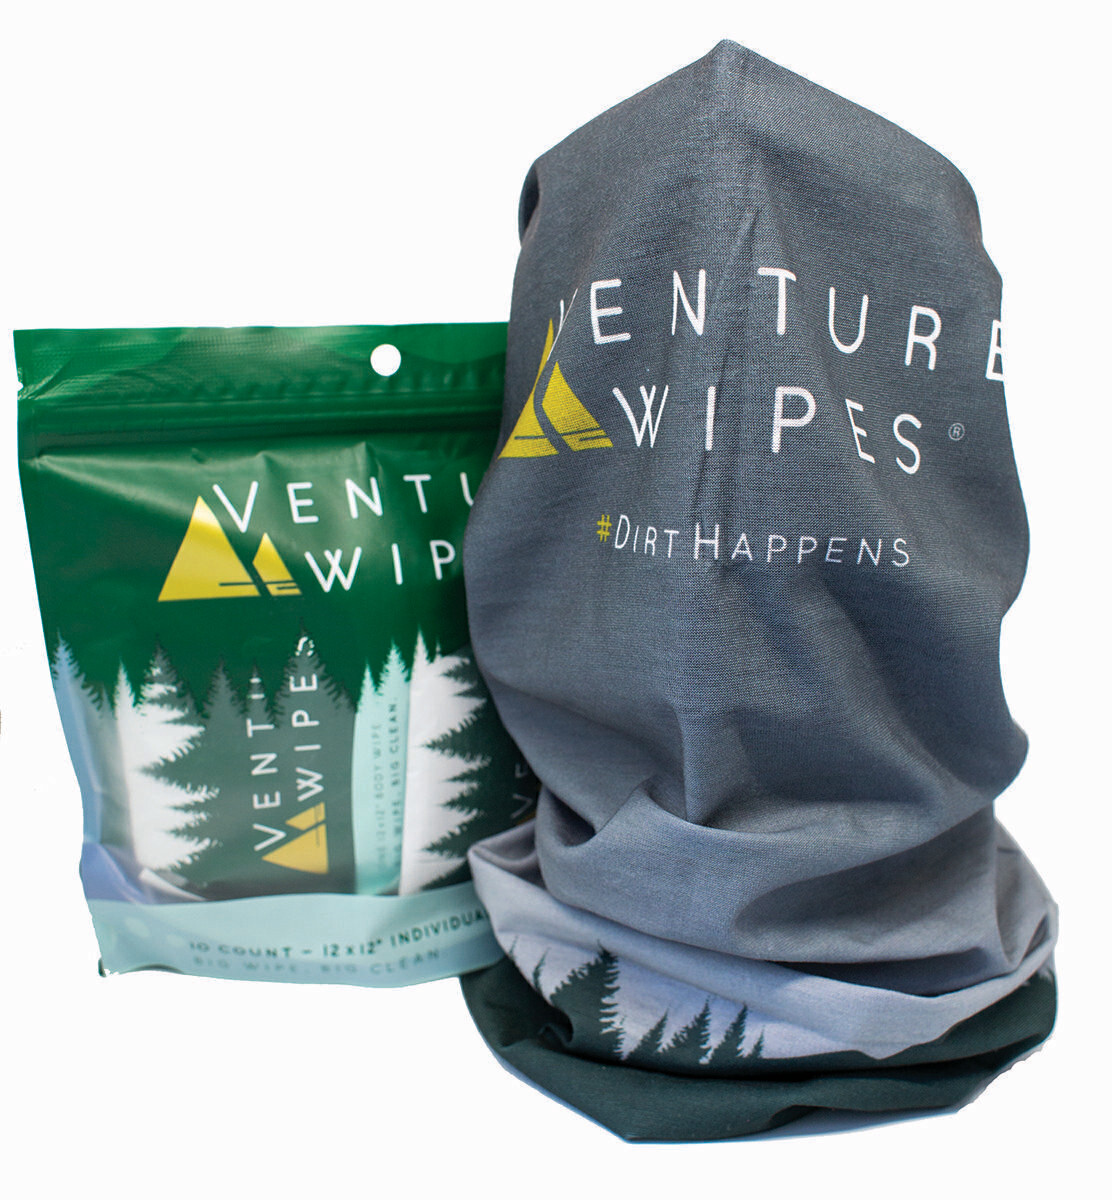 Venture Wipes Bundle 1: 10-Count & Neck Gaiter